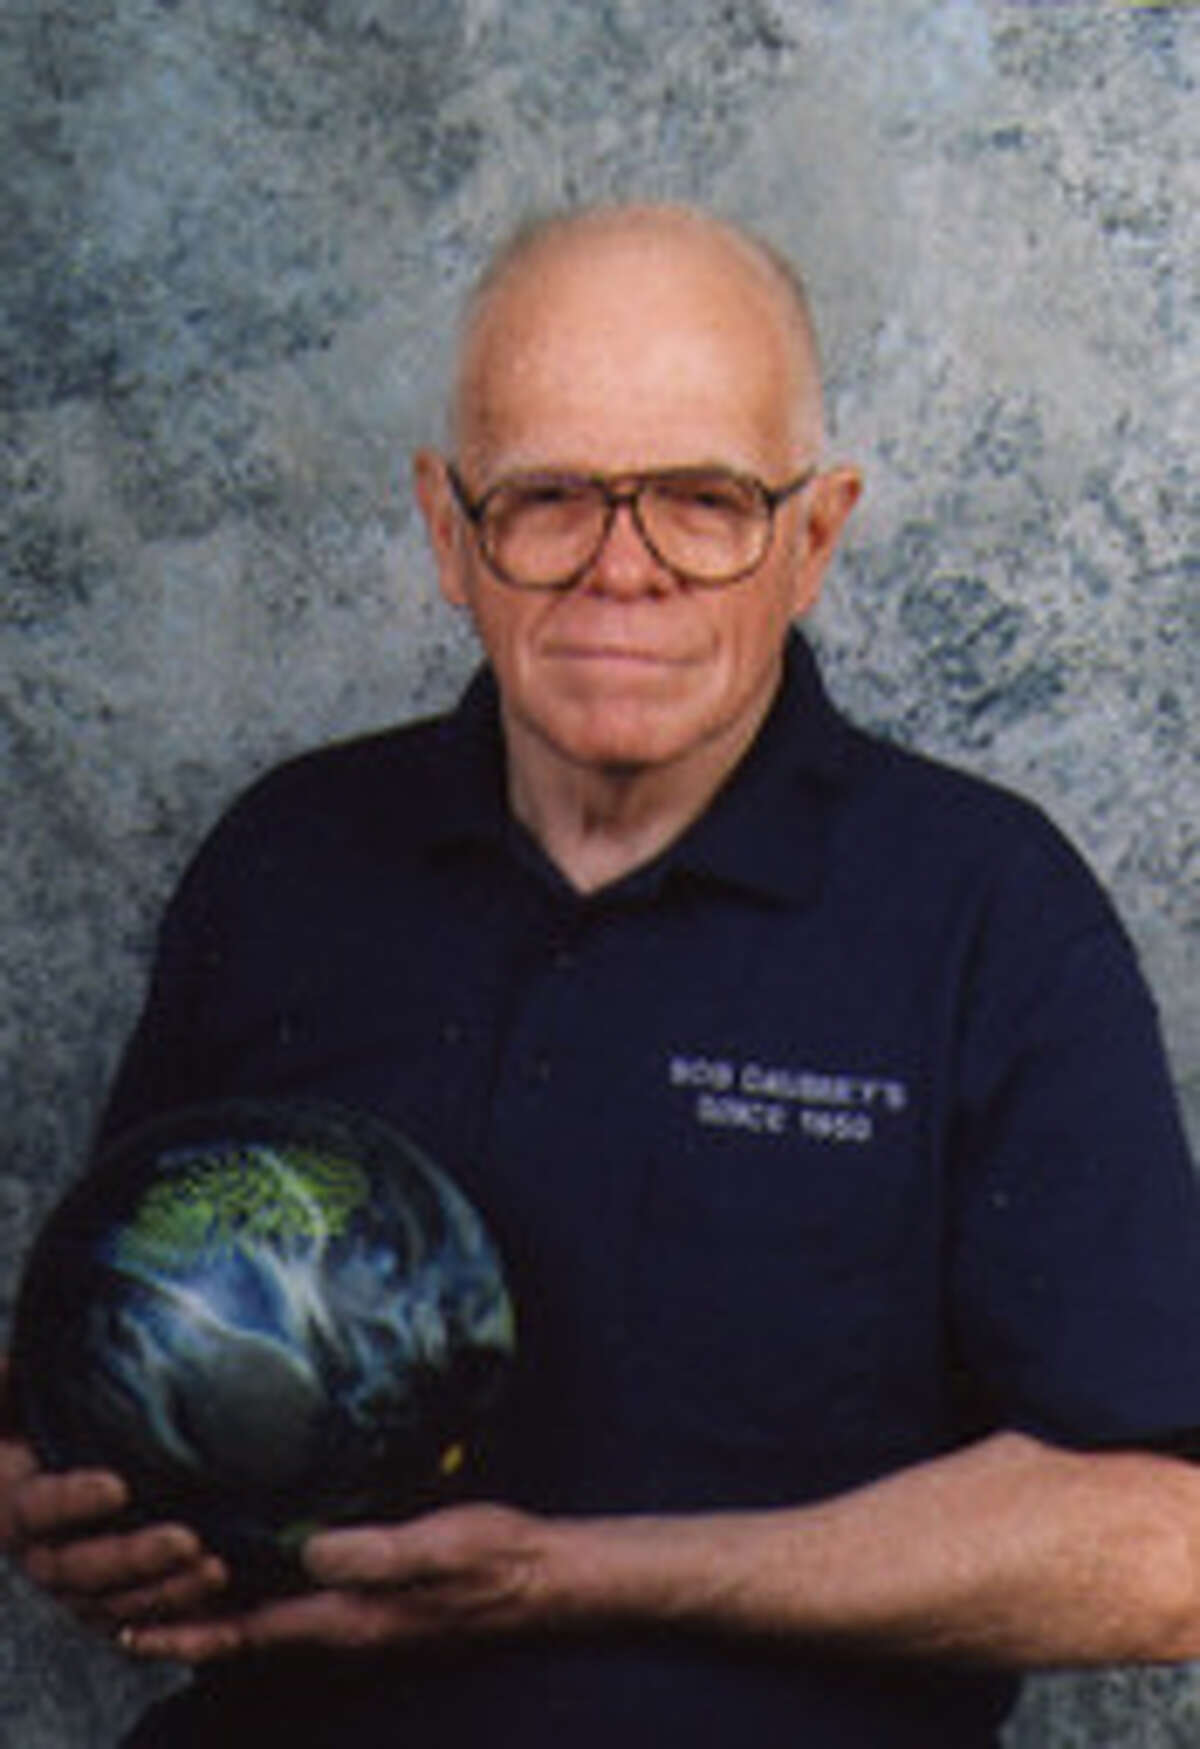 Bob Daubney, who owned Daubney's Bowling and Billiars for 63 years, died Saturday, Nov. 21, 2020. He was 86. (Photo courtesy Daubney family)